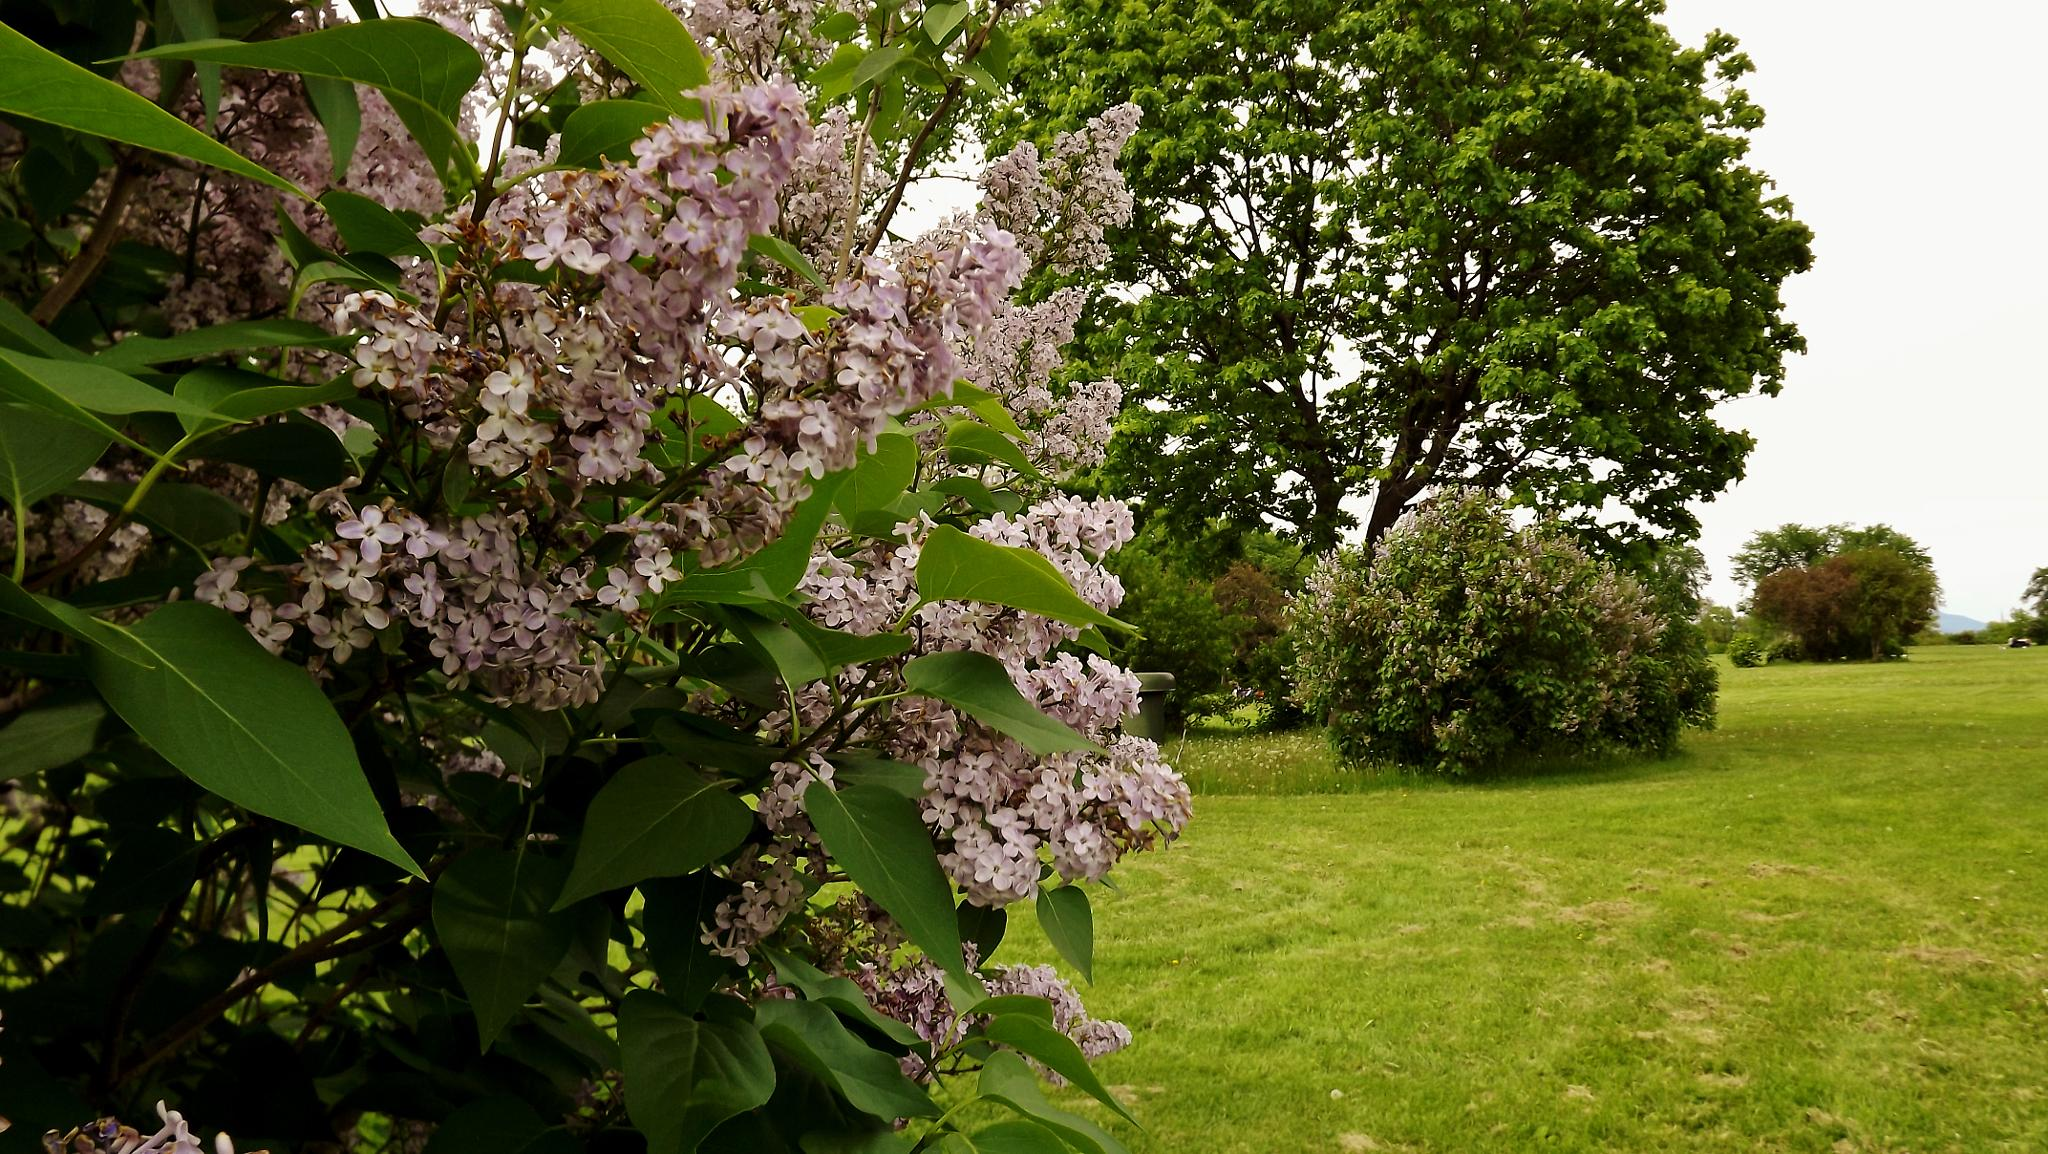 Lilas & flowers trees Plaines d'Abraham by real.michaud.5036